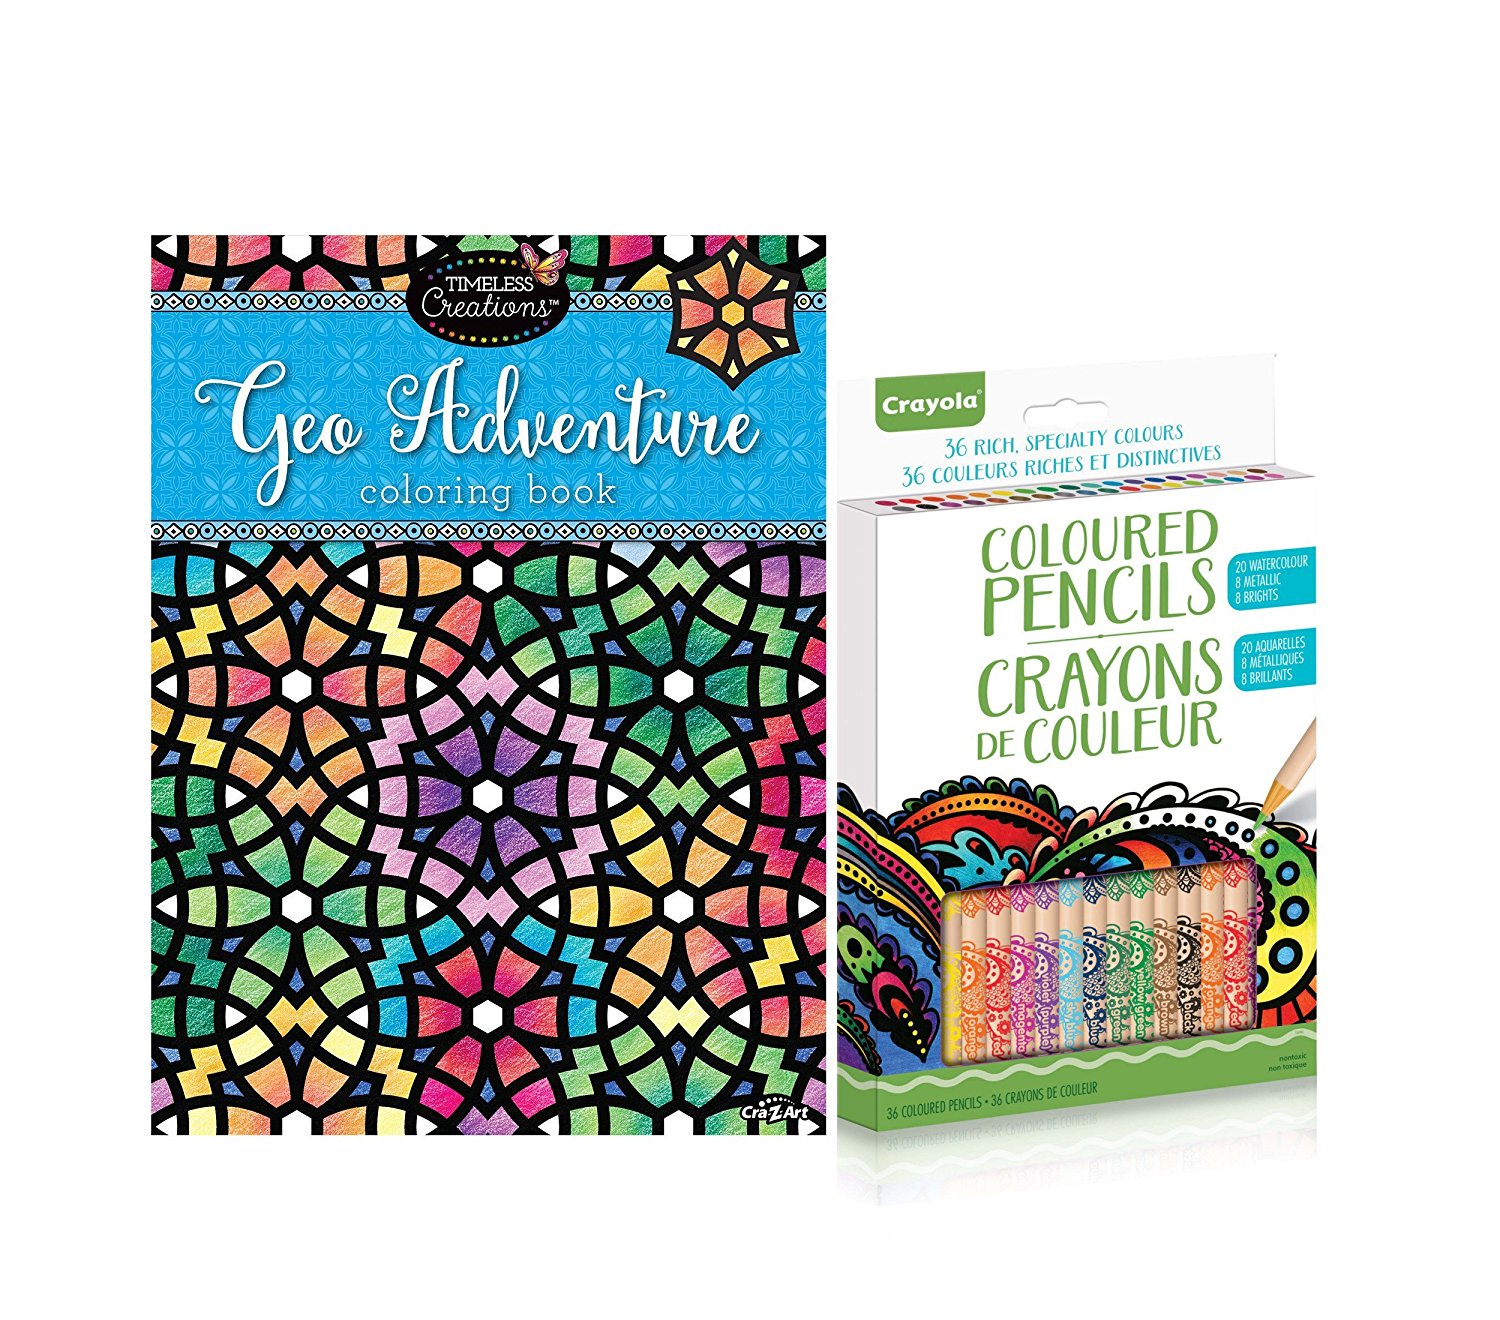 Cra Z Art Timeless Creations Adult Coloring Books With 36CT Crayola